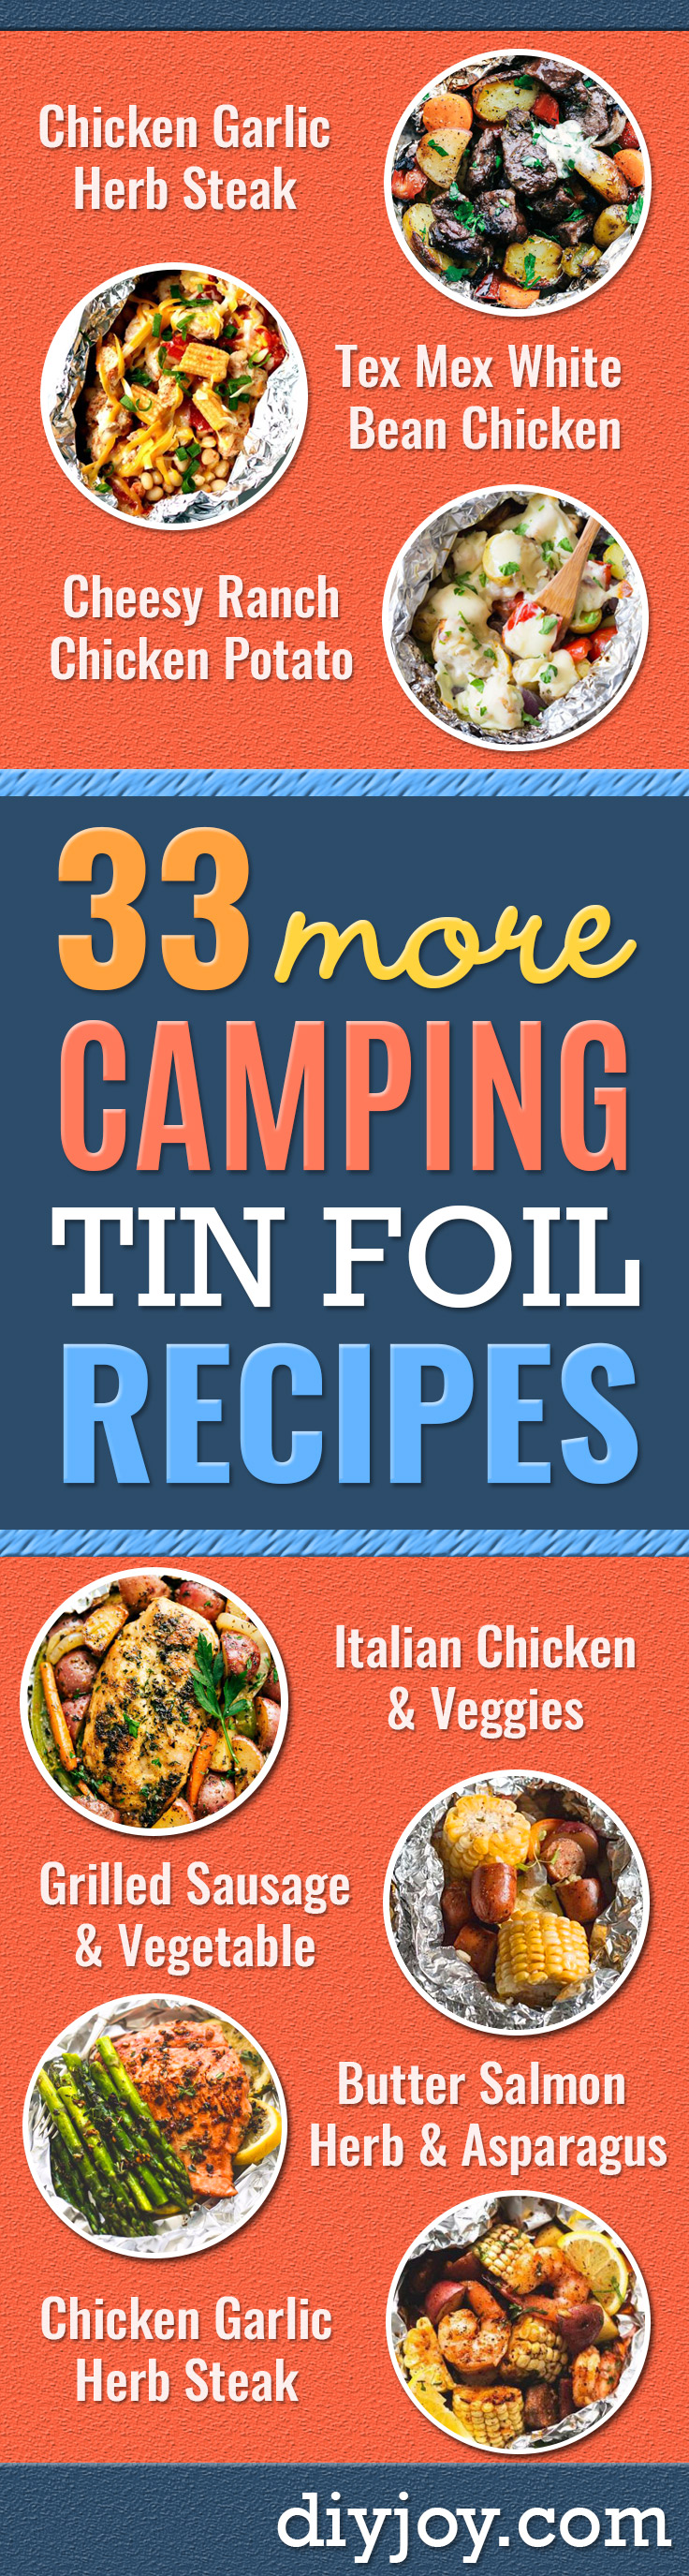 Tin Foil Camping Recipes - DIY Tin Foil Dinners, Ideas for Camping Trips and On Grill. Hamburger, Chicken, Healthy, Fish, Steak , Easy Make Ahead Recipe Ideas for the Campfire. Breakfast, Lunch, Dinner and Dessert, Snacks all Wrapped in Foil for Quick Cooking http://diyjoy.com/tinfoil-camping-recipes